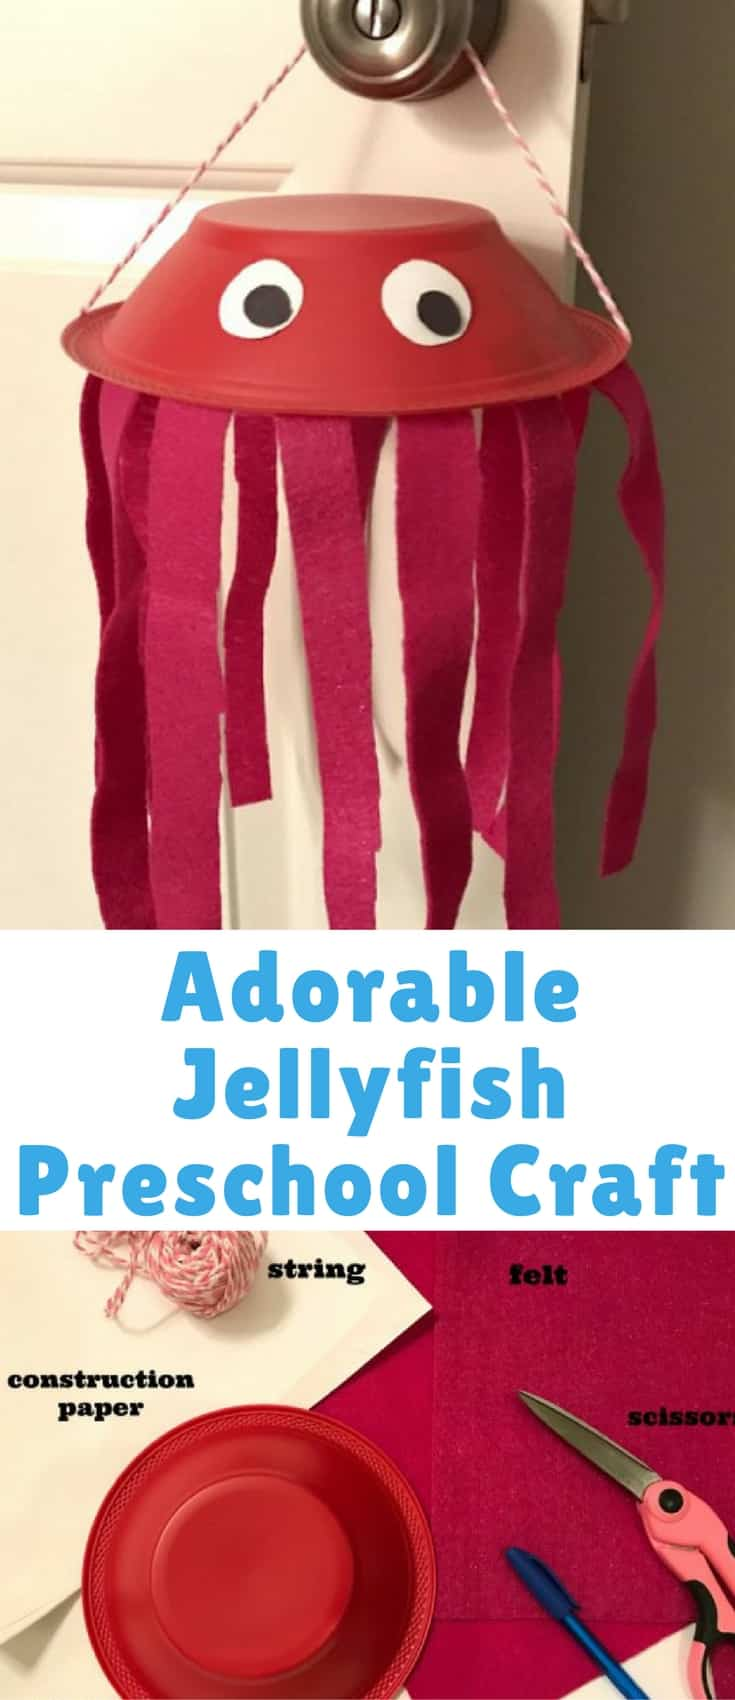 Adorable Jellyfish Preschool Craft Tutorial Jellyfish Facts Kids